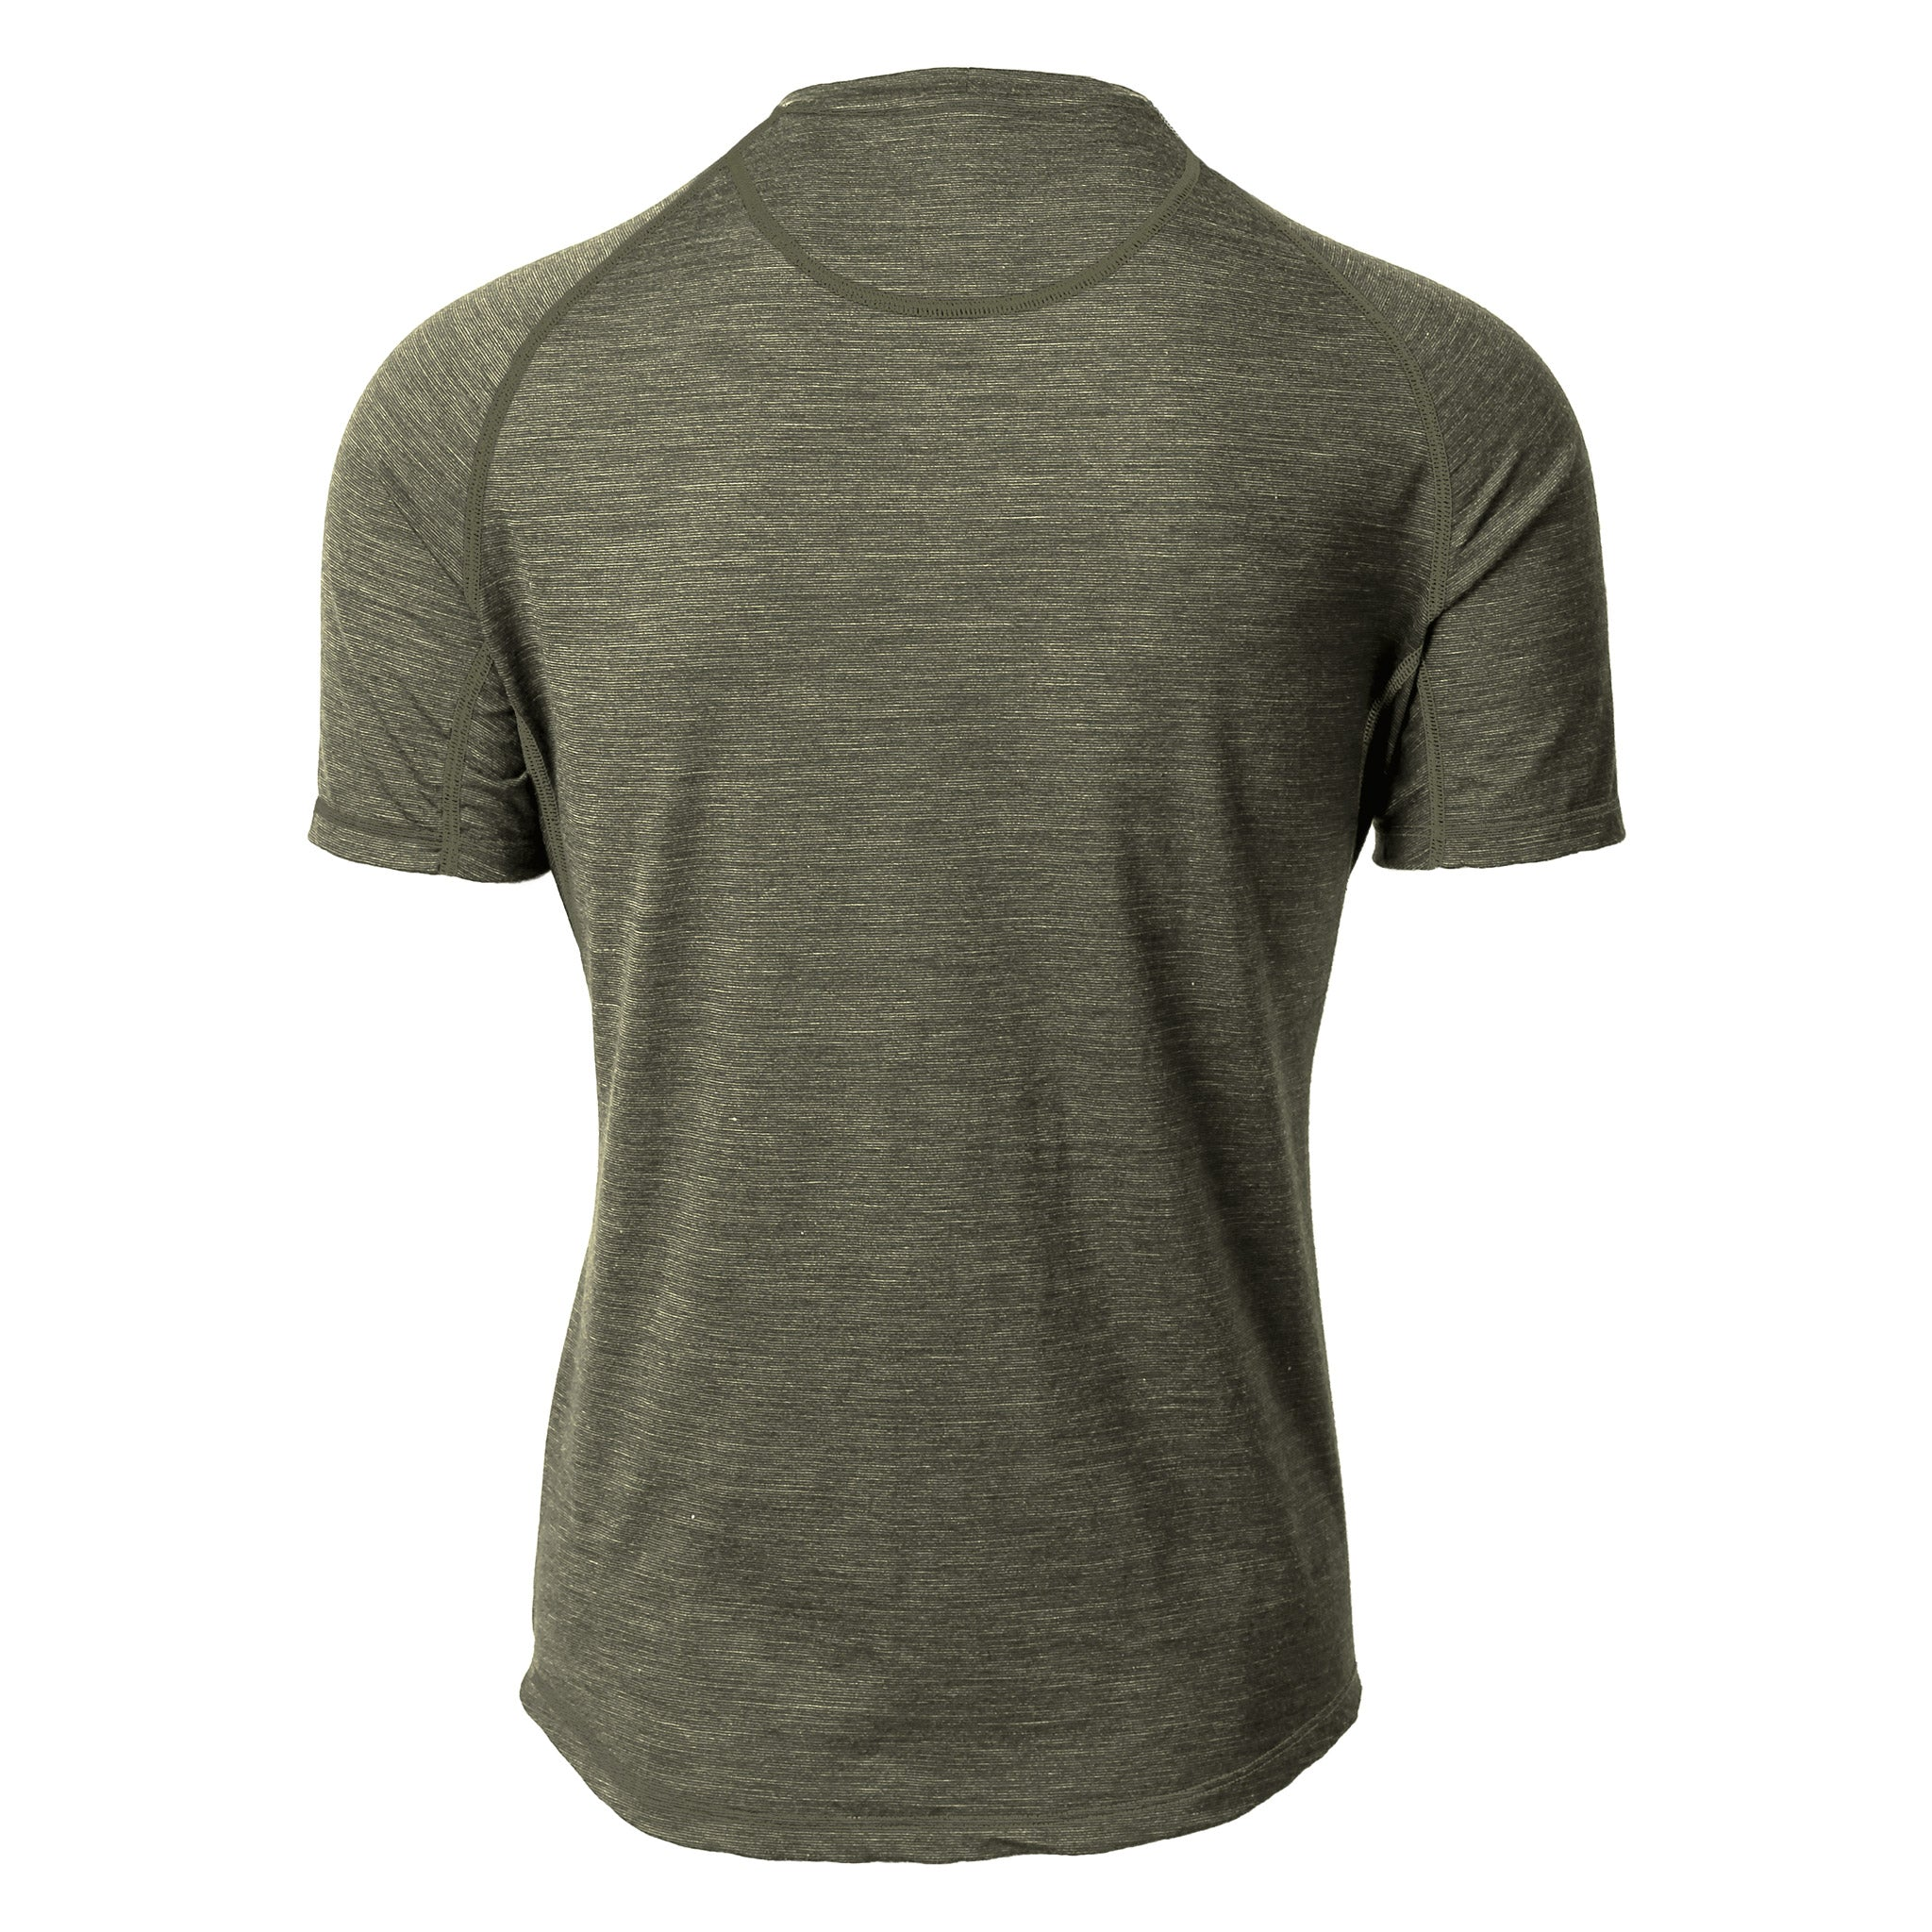 Mullinax Merino Tee Cedar Heather